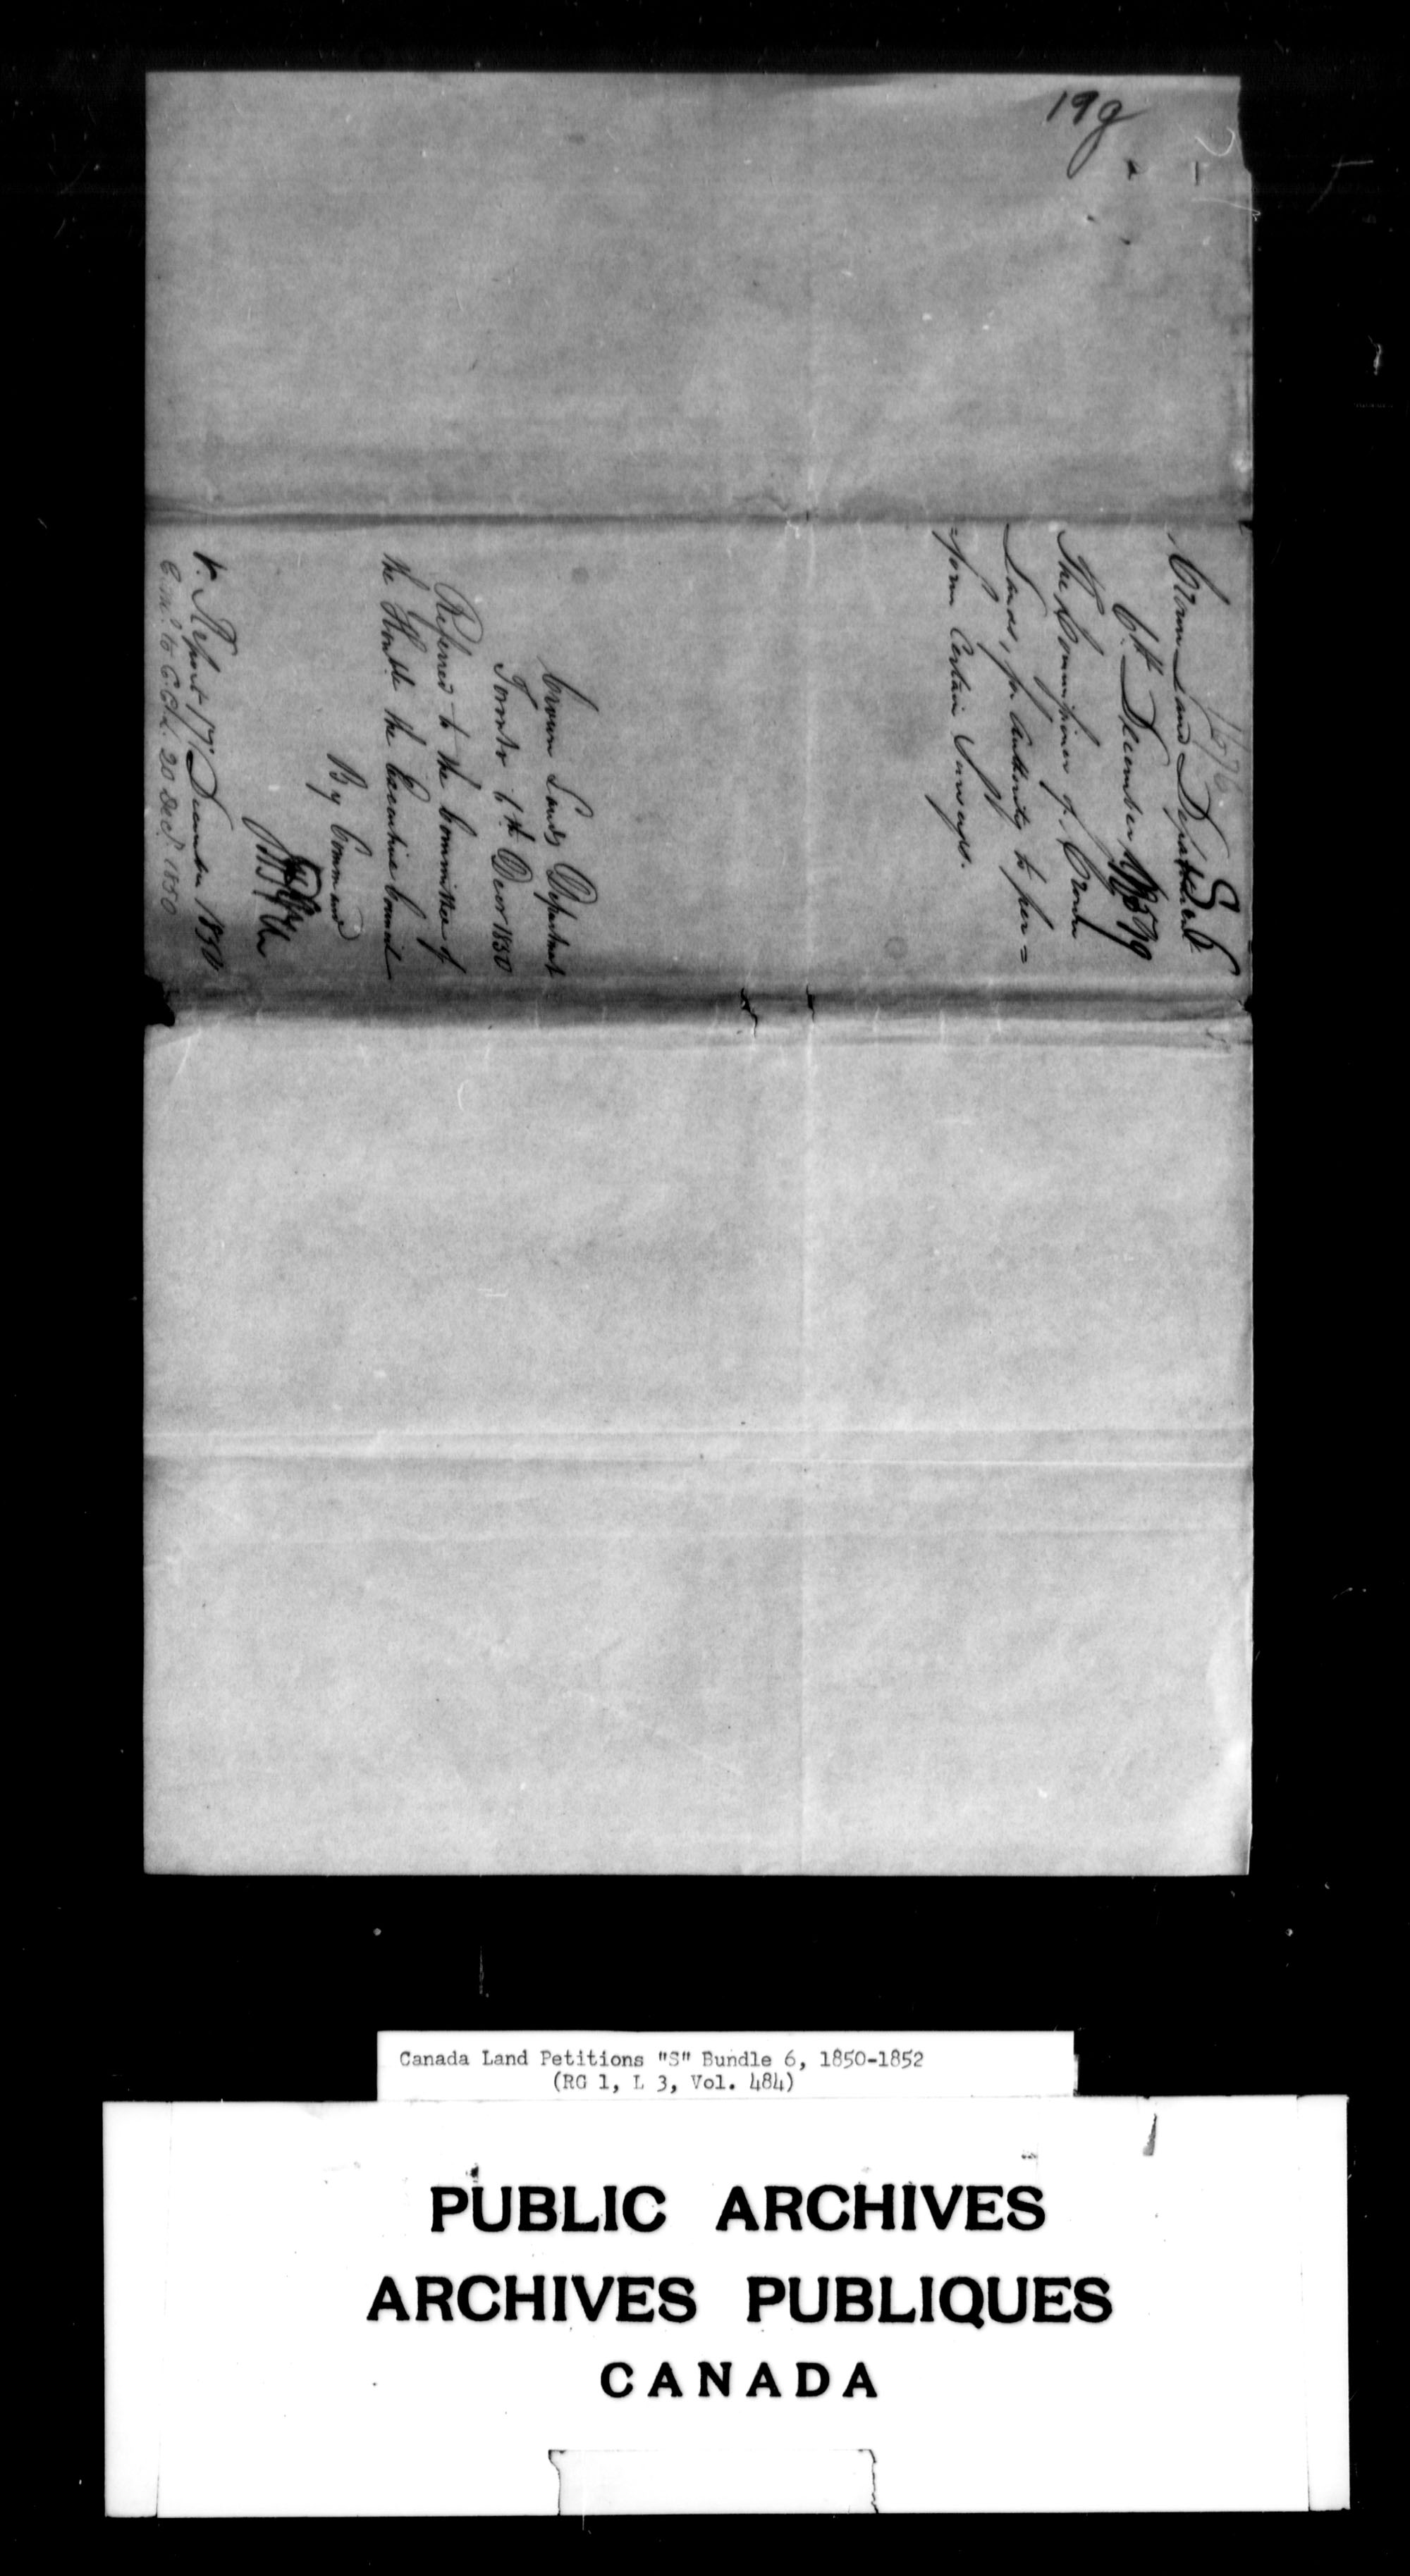 Title: Upper Canada Land Petitions (1763-1865) - Mikan Number: 205131 - Microform: c-2826